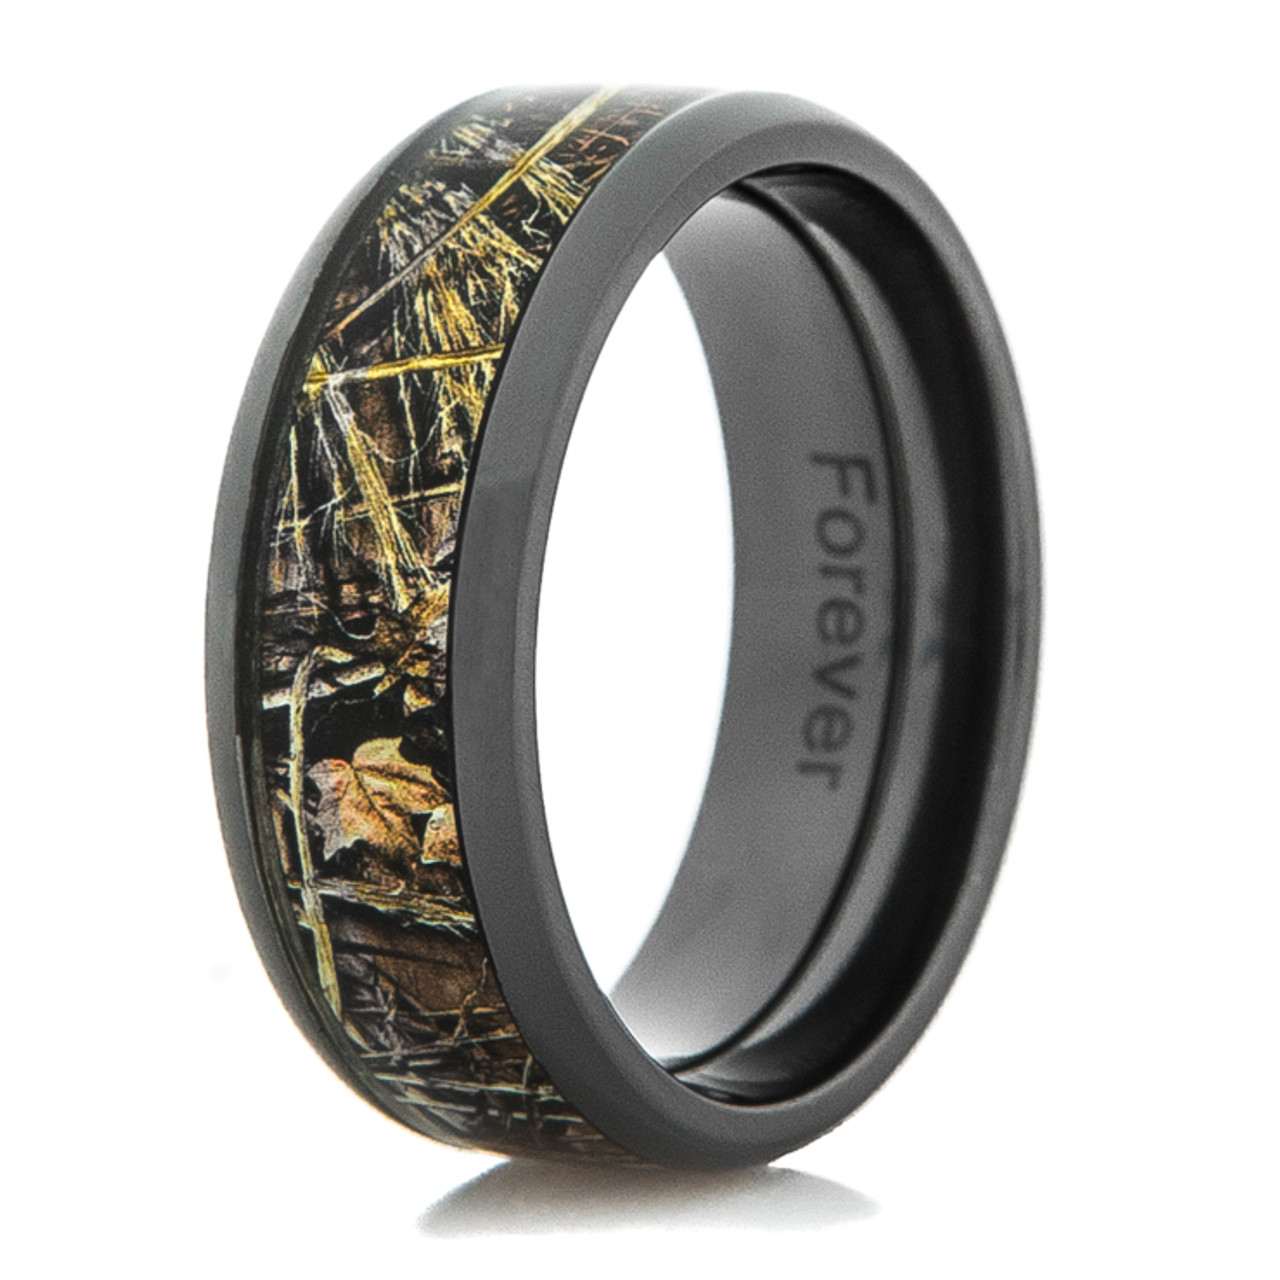 rings outdoor couples loving hunting inspired seen offbeatbride country camouflage wedding and these camokix camo as on